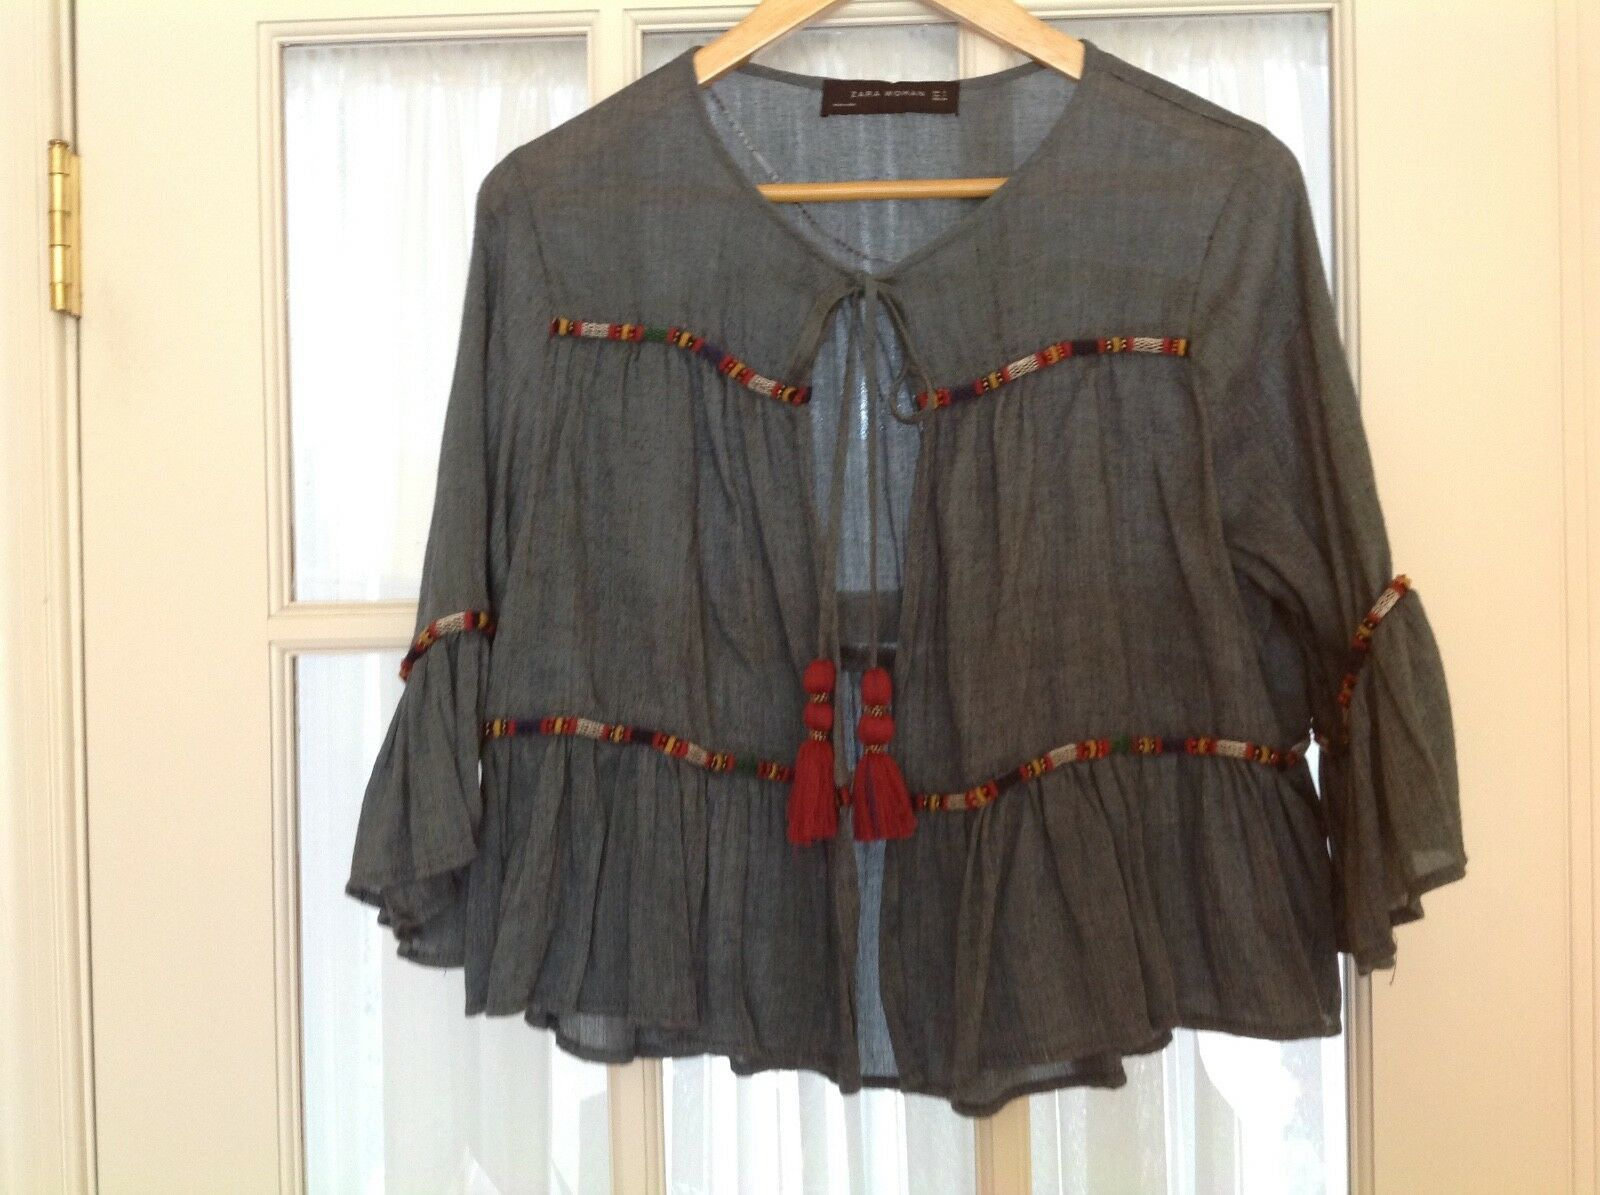 Zara Embroidered and beads Tunic with Tassel Tie NWOT